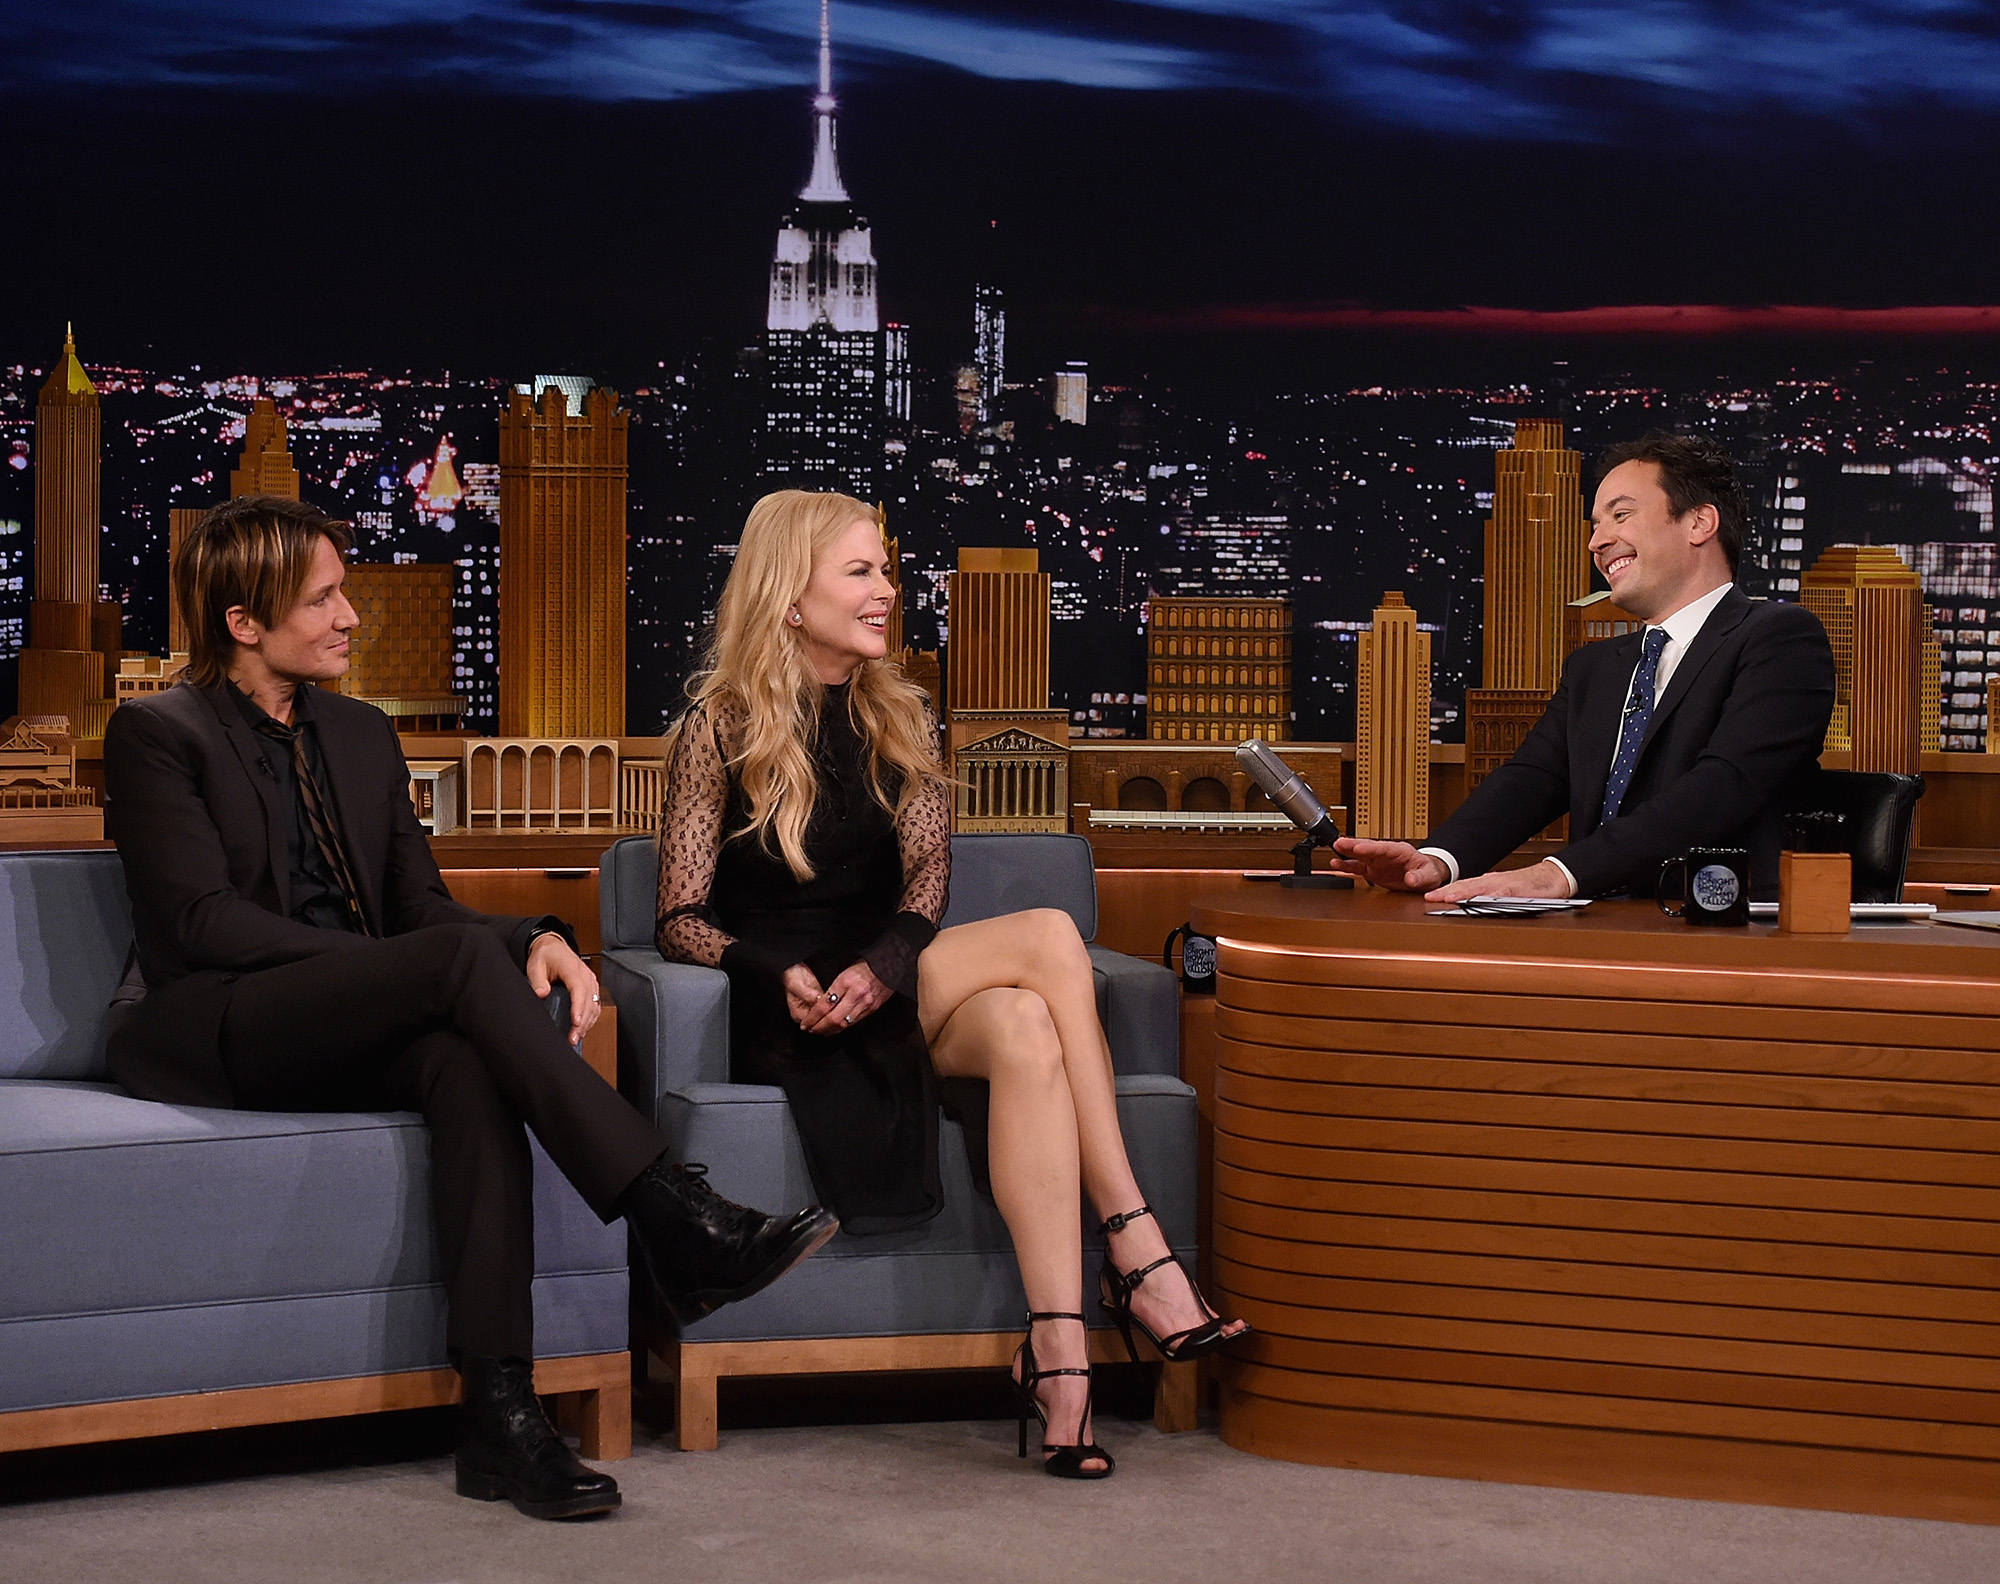 Keith Urban, Nicole Kidman and host Jimmy Fallon during a segment on  The Tonight Show Starring Jimmy Fallon  at Rockefeller Center on November 16, 2016 in New York City.  (Photo by Jamie McCarthy/Getty Images)